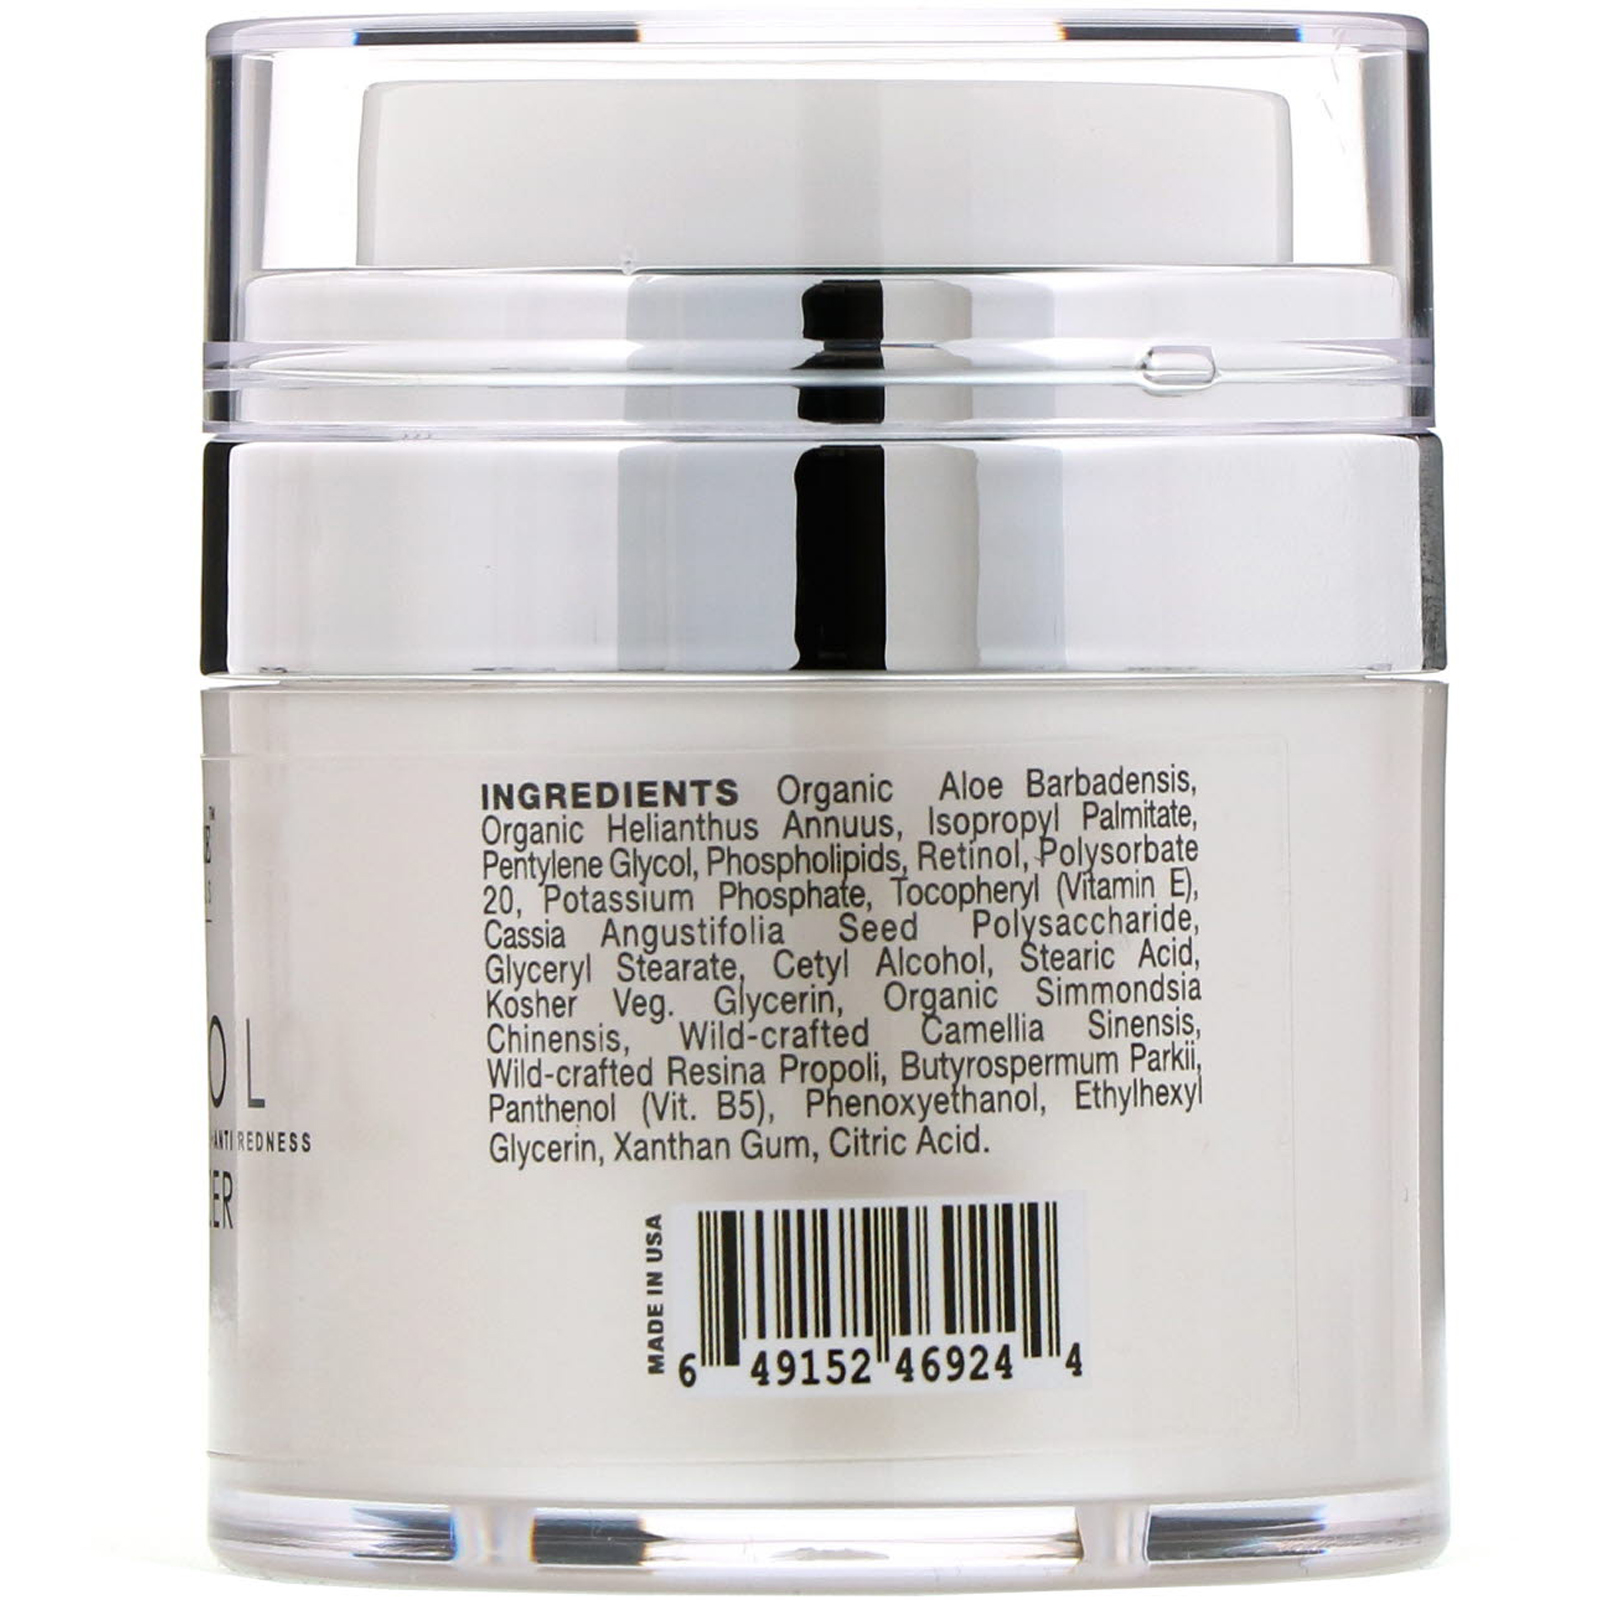 89e6148da94 Majestic Pure, Retinol Moisturizer, 1 fl oz (30 ml). By Majestic Pure. Click  to zoom